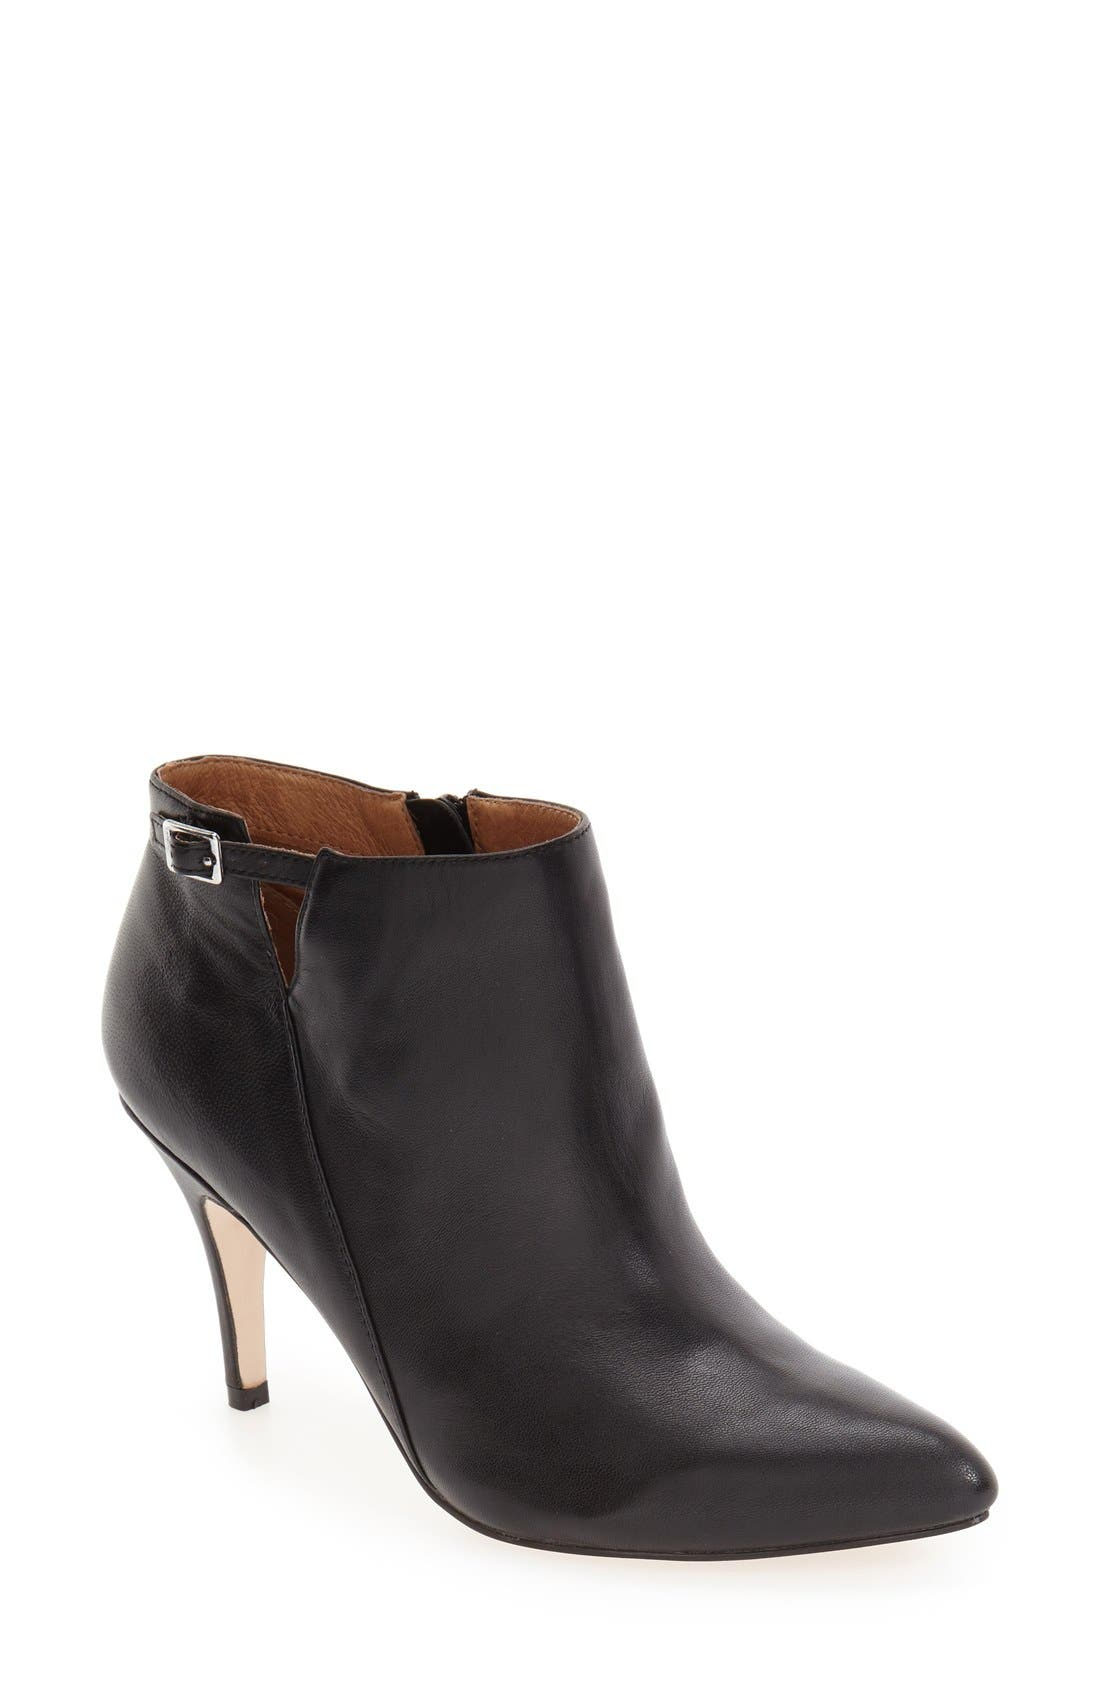 'Roster' Pointy Toe Bootie,                             Main thumbnail 1, color,                             001